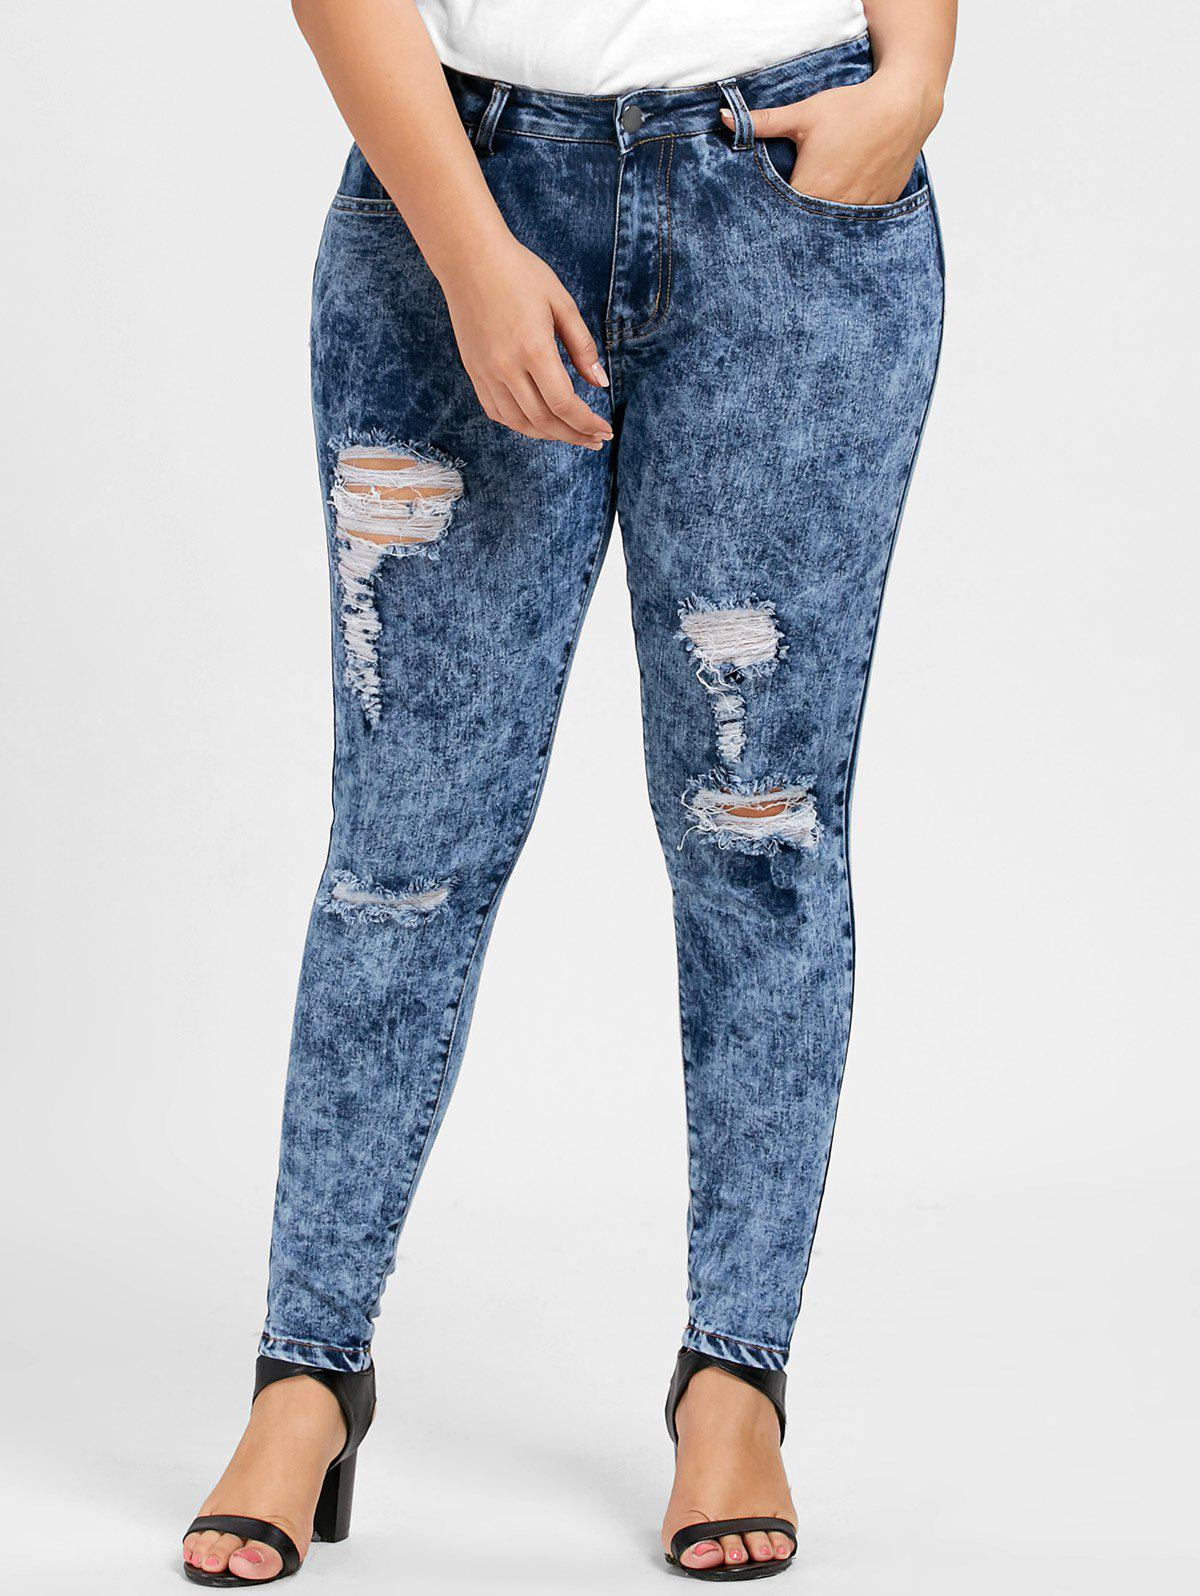 Plus Size Skinny Ripped Zipper JeansWOMEN<br><br>Size: 5XL; Color: DENIM BLUE; Style: Fashion; Length: Normal; Material: Polyester; Fit Type: Skinny; Waist Type: Mid; Closure Type: Zipper Fly; Pattern Type: Solid; Pant Style: Pencil Pants; Weight: 0.5650kg; Package Contents: 1 x Jeans;